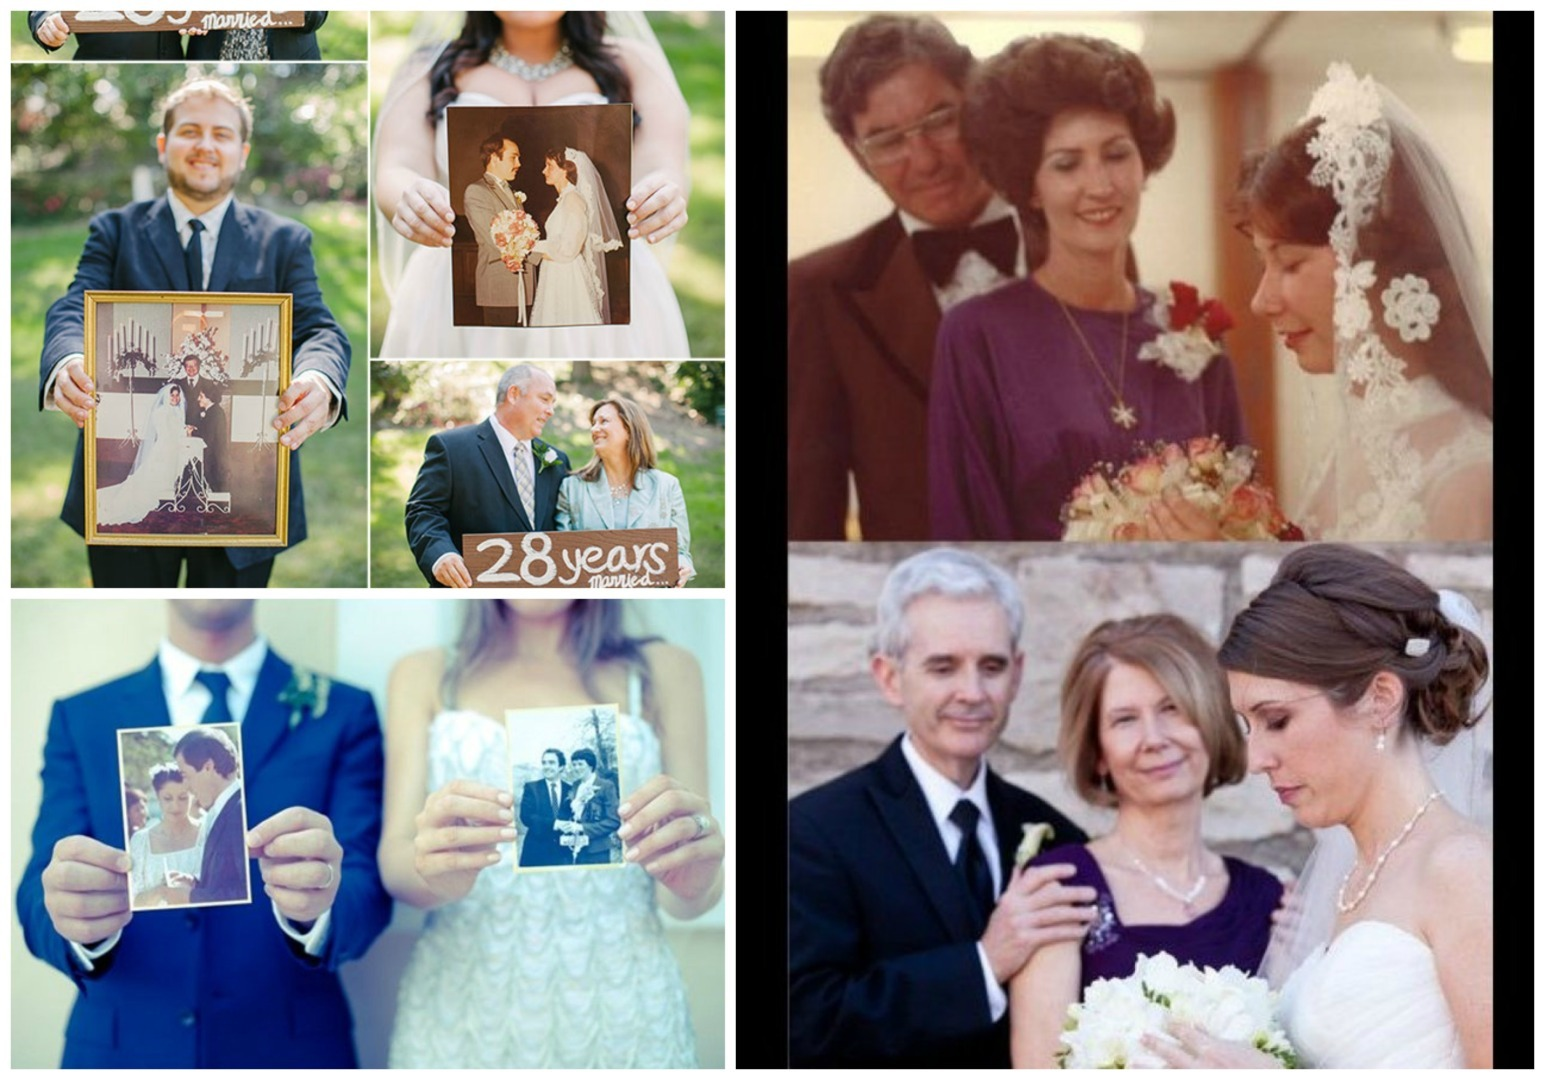 Gifts To Give Parents On Wedding Day: Wedding Gifts For Parents